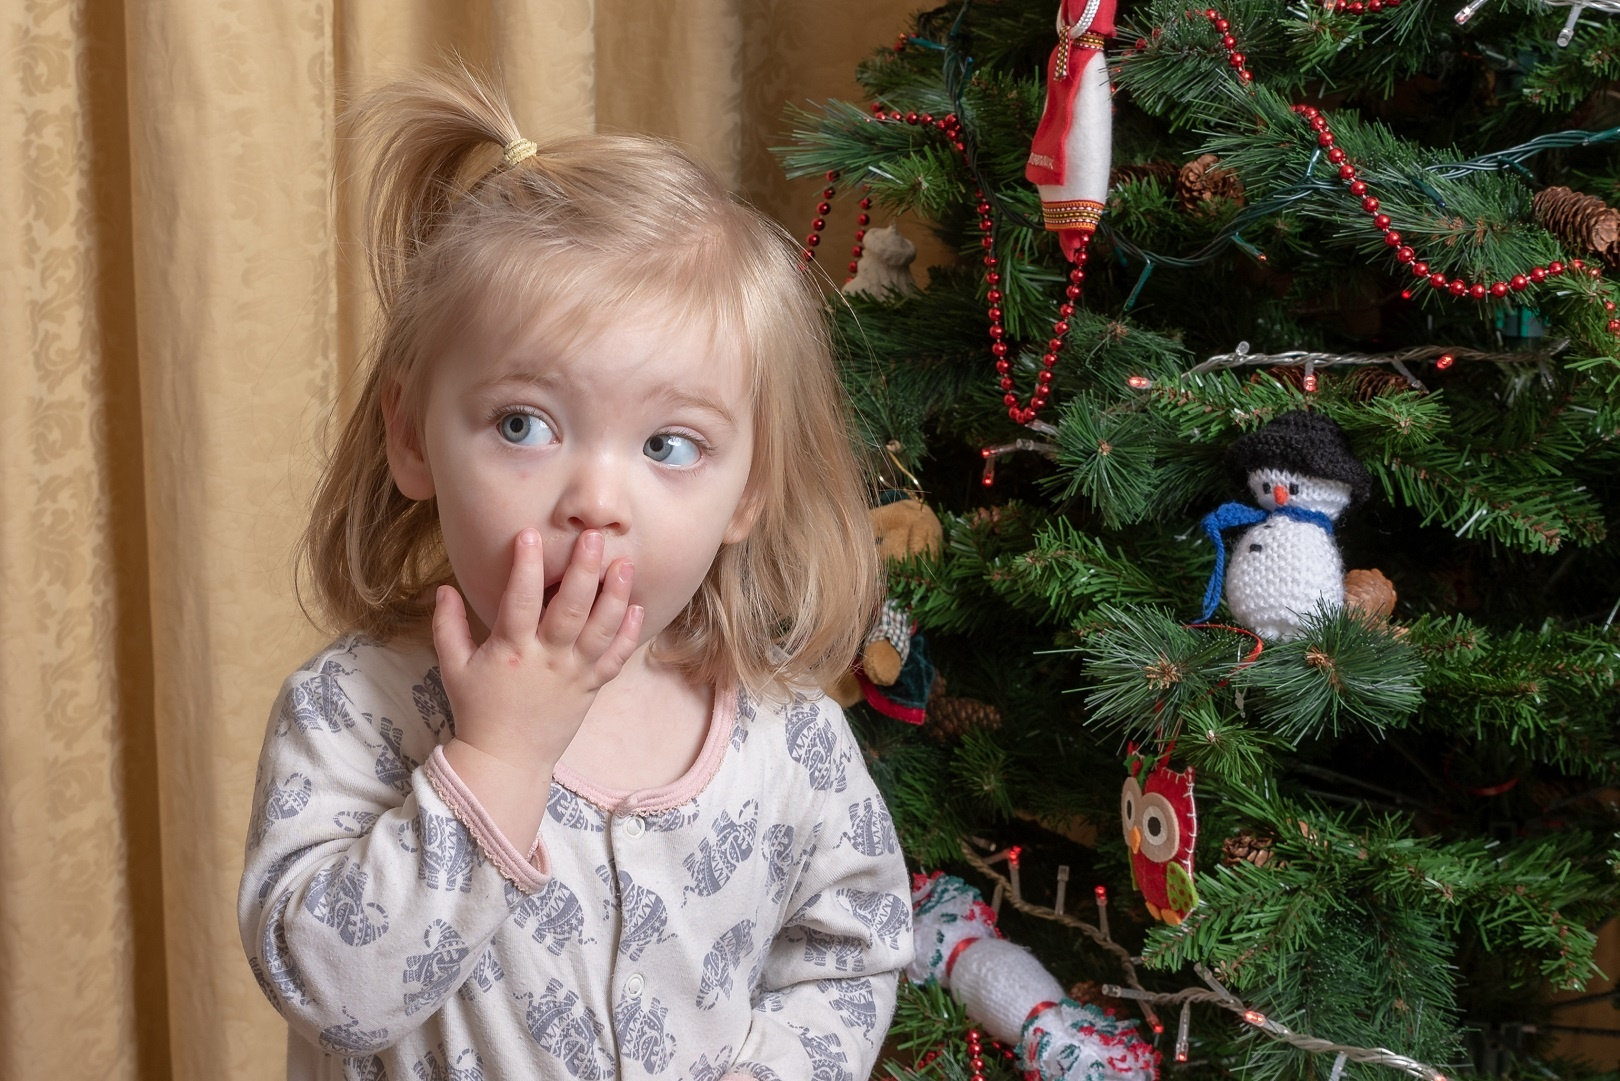 Over Her Christmas Presents - 3 y/o Realizes She's 100% Over Her Christmas Presents